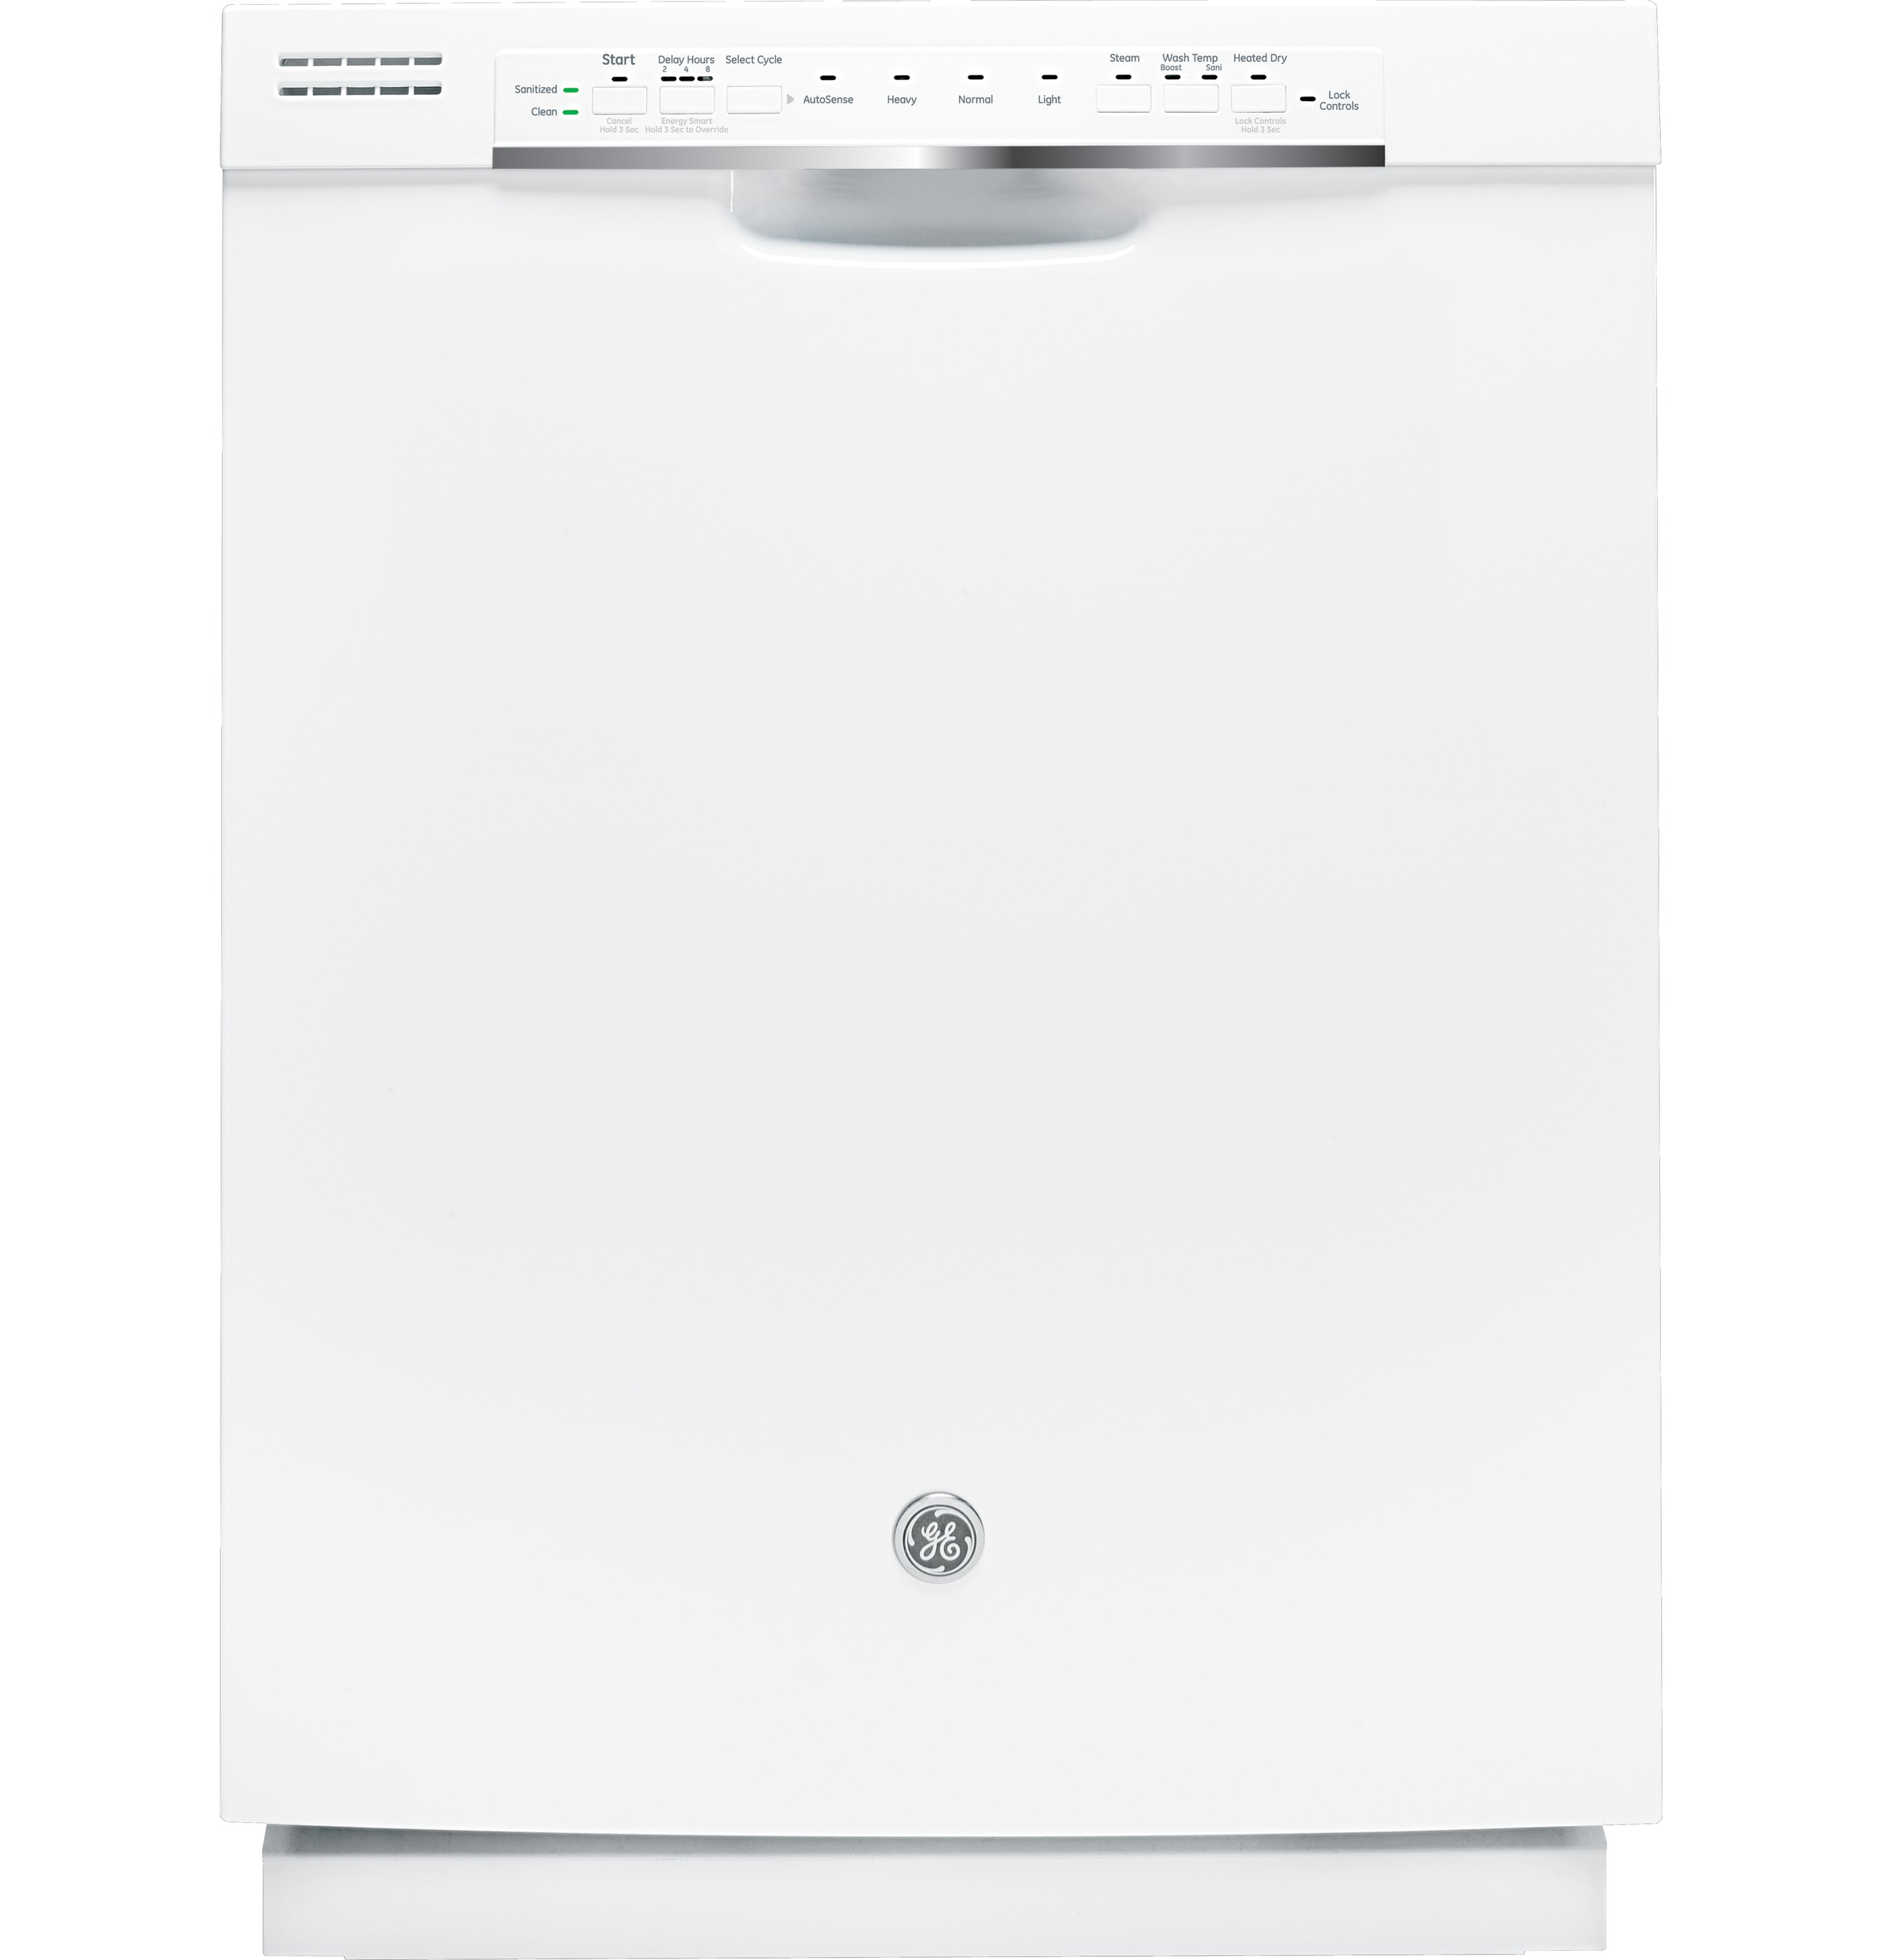 General Electric Dishwasher Troubleshooting Gear Dishwasher With Front Controls Gdf520pgdww Ge Appliances